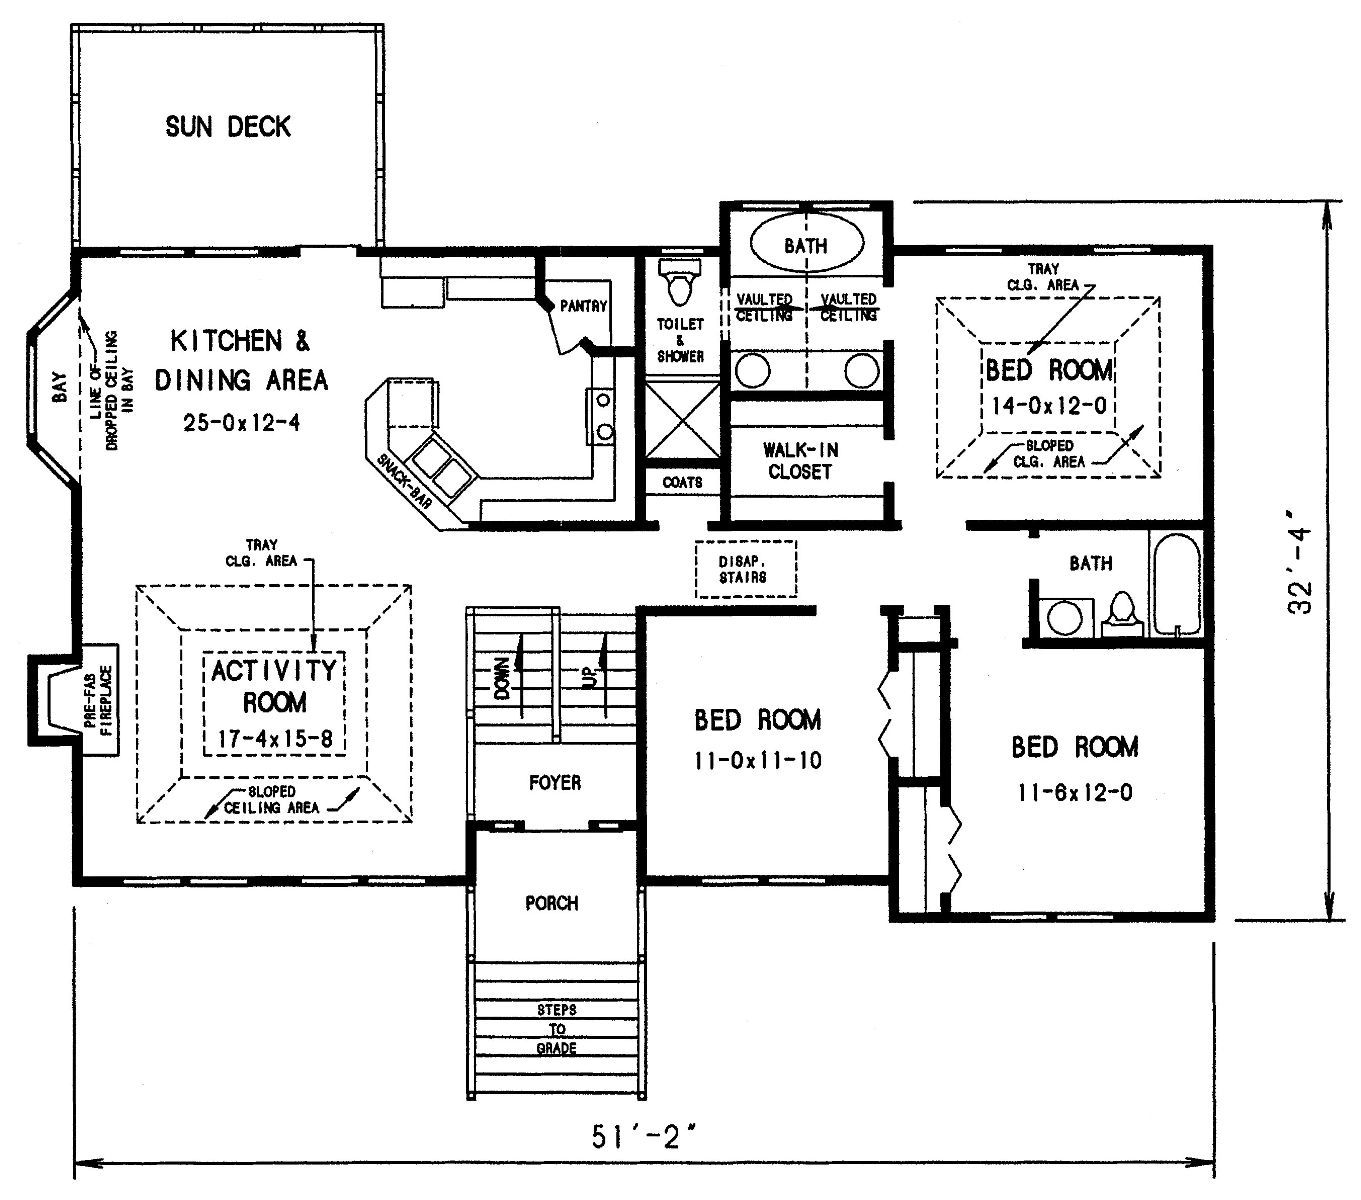 Cob house floor plans split foyer floor plans house Split floor plan